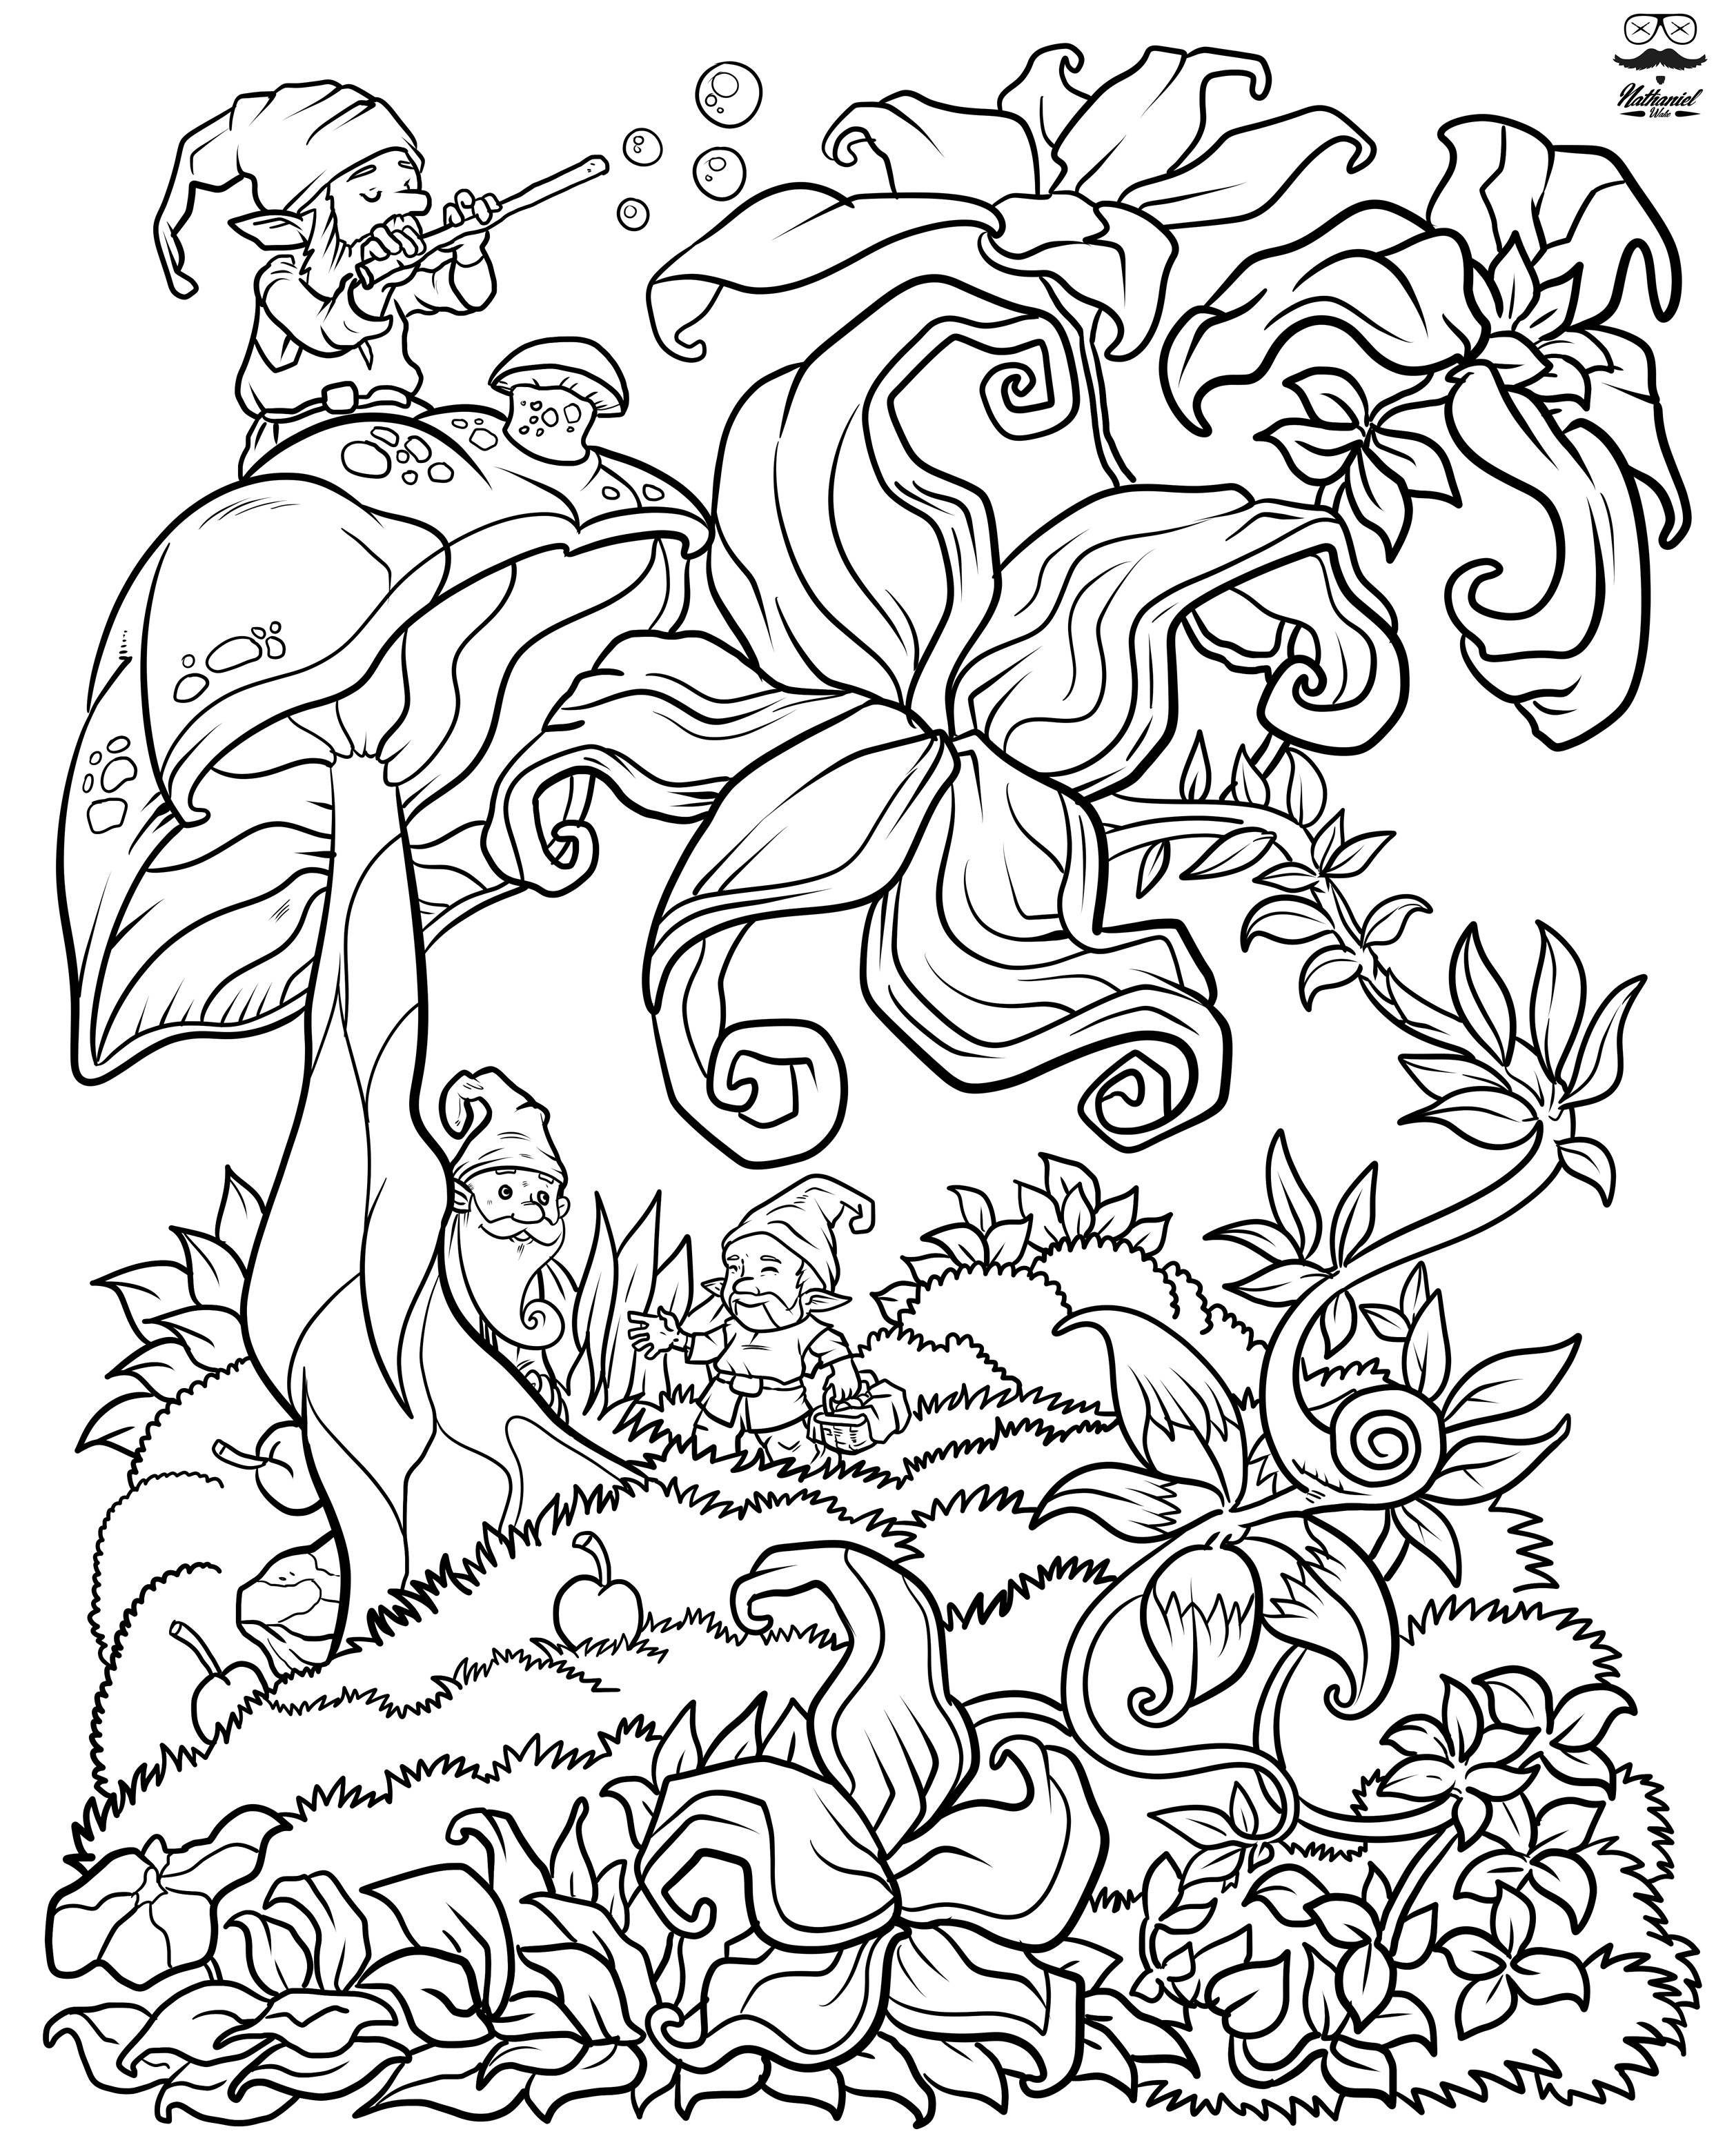 Printable Adult Coloring Books  Floral Fantasy Digital Version Adult Coloring Book